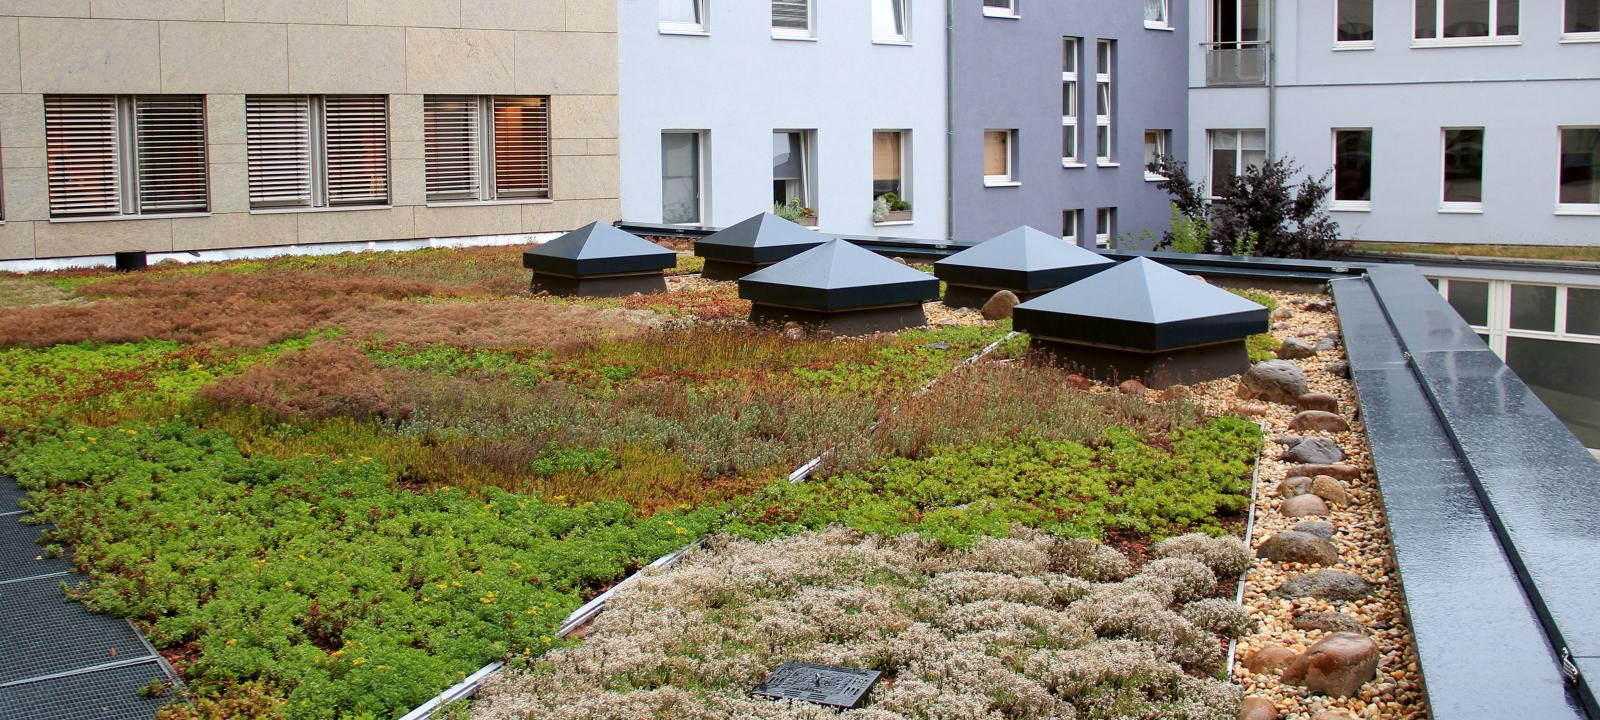 Extensive green roof during rainfall